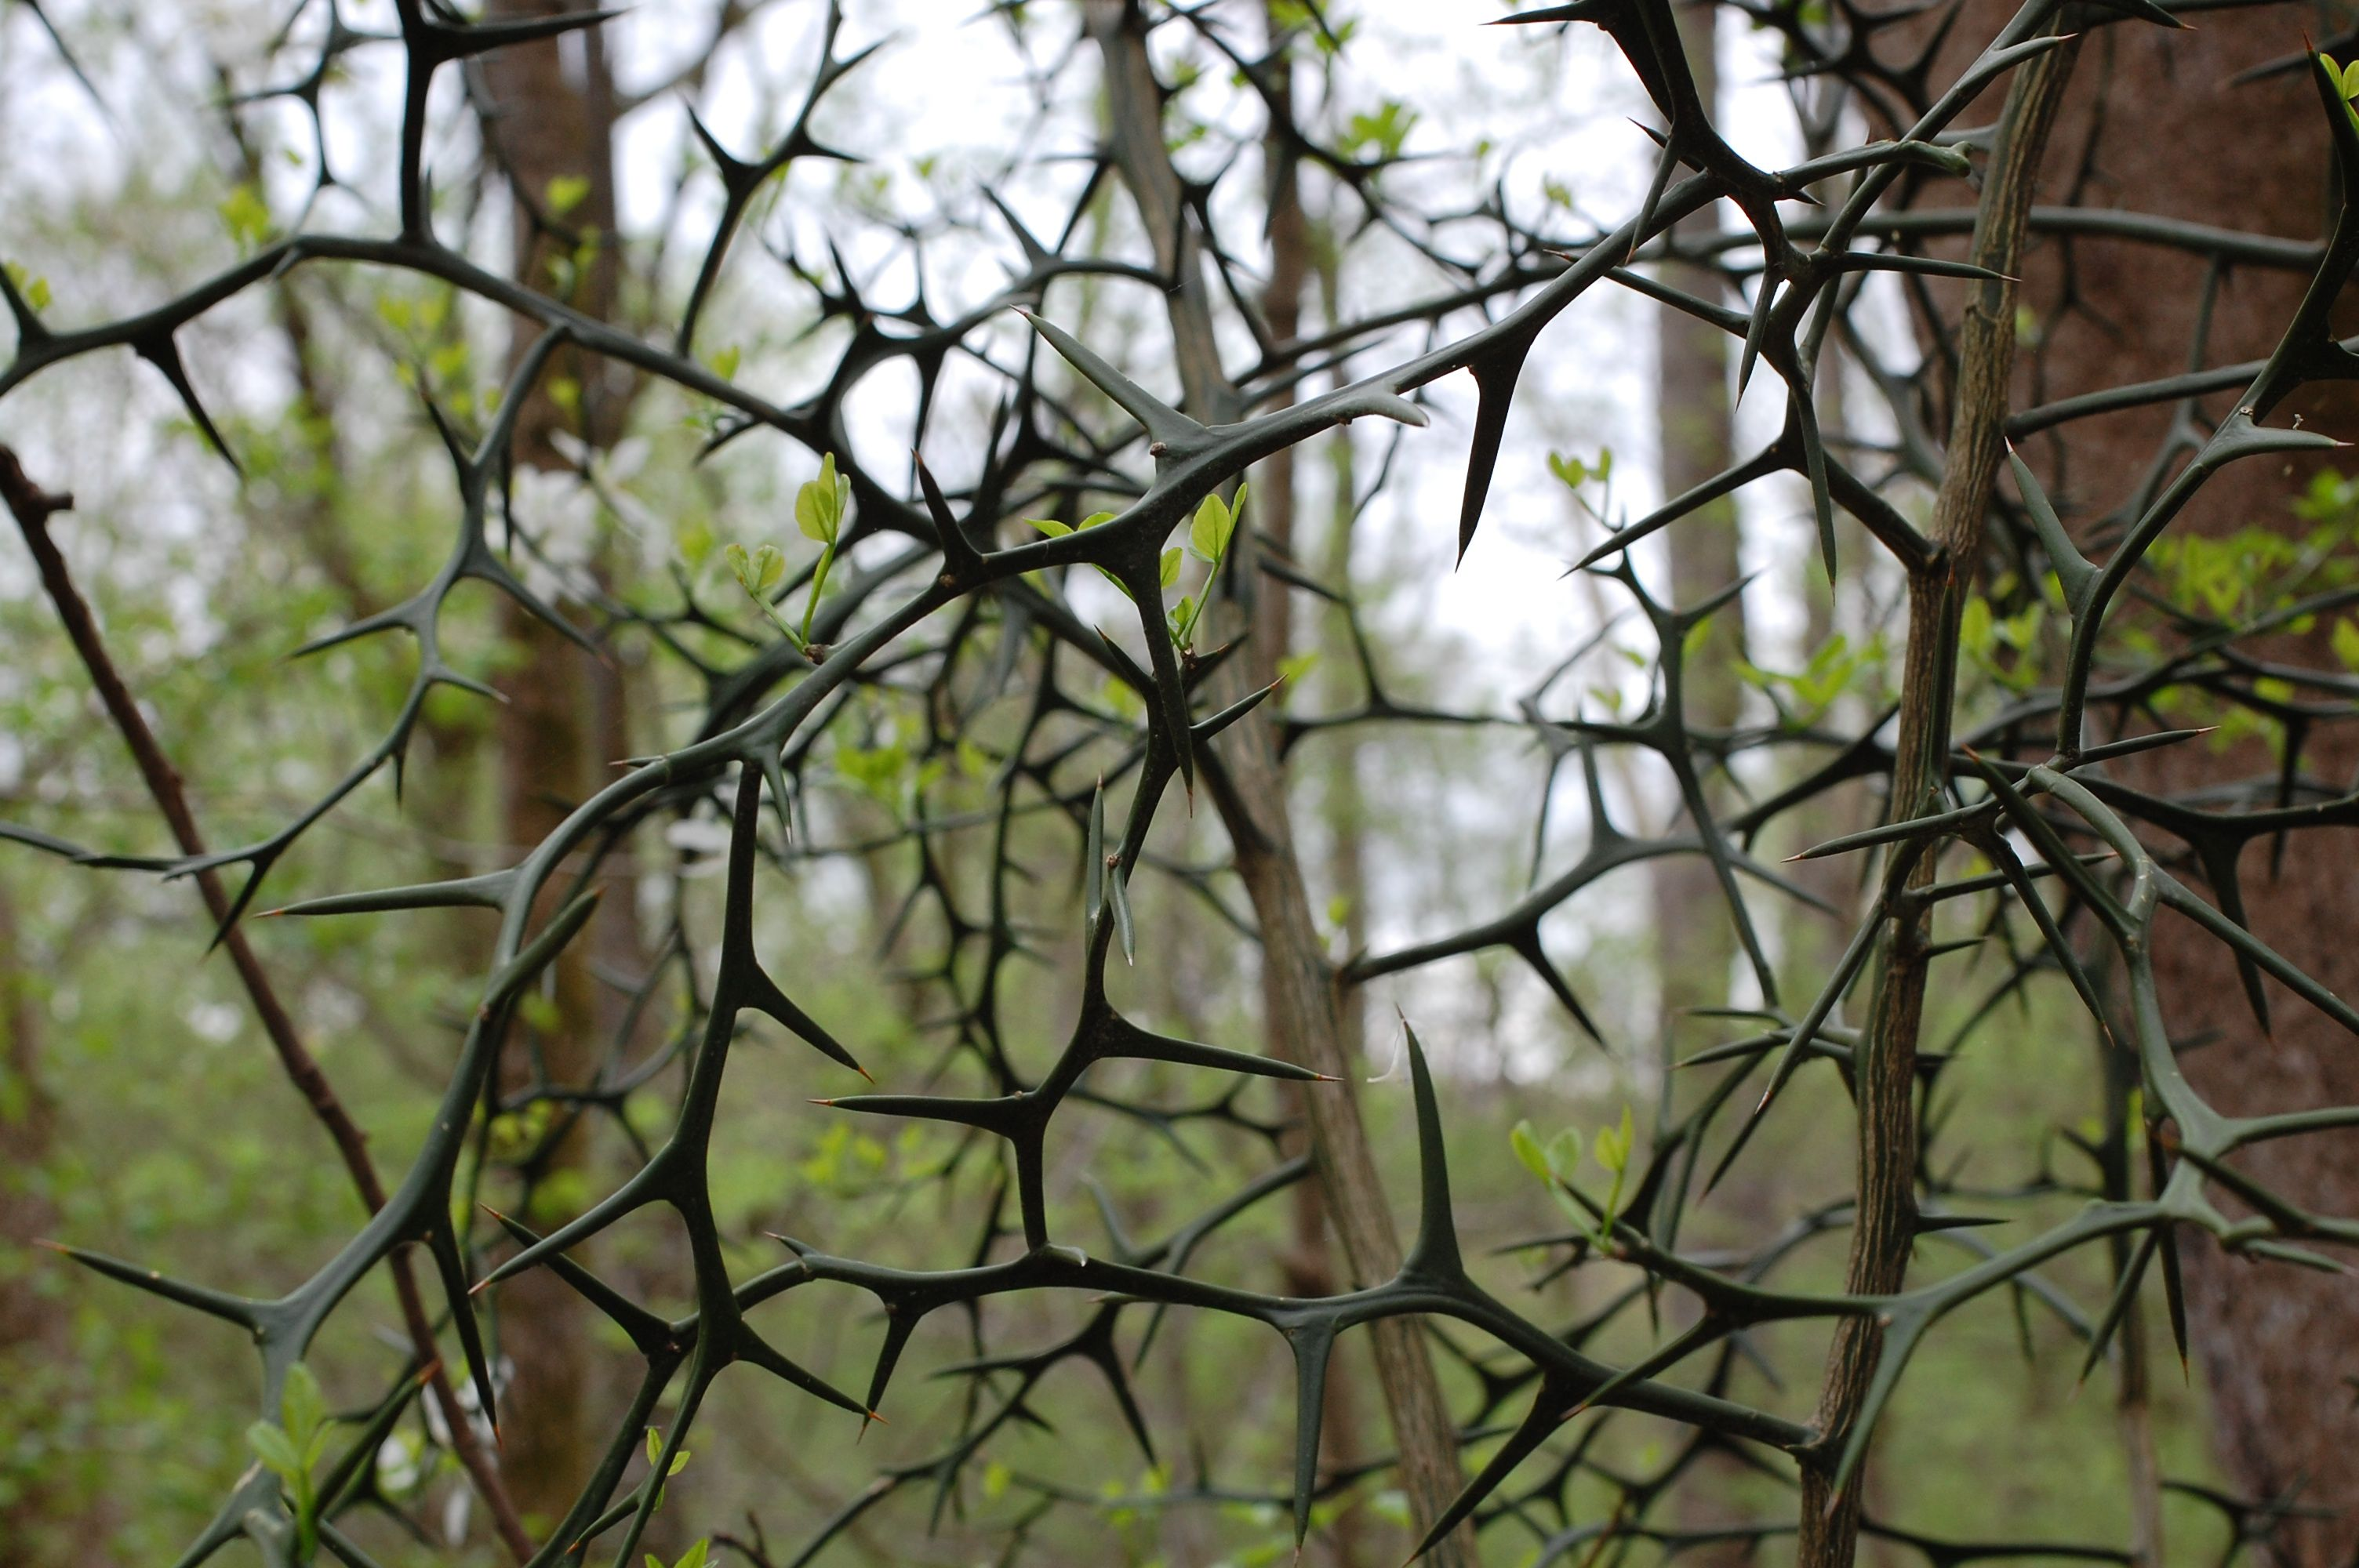 A thicket of black vines with long, curved thorns creates a barrier in a forest.